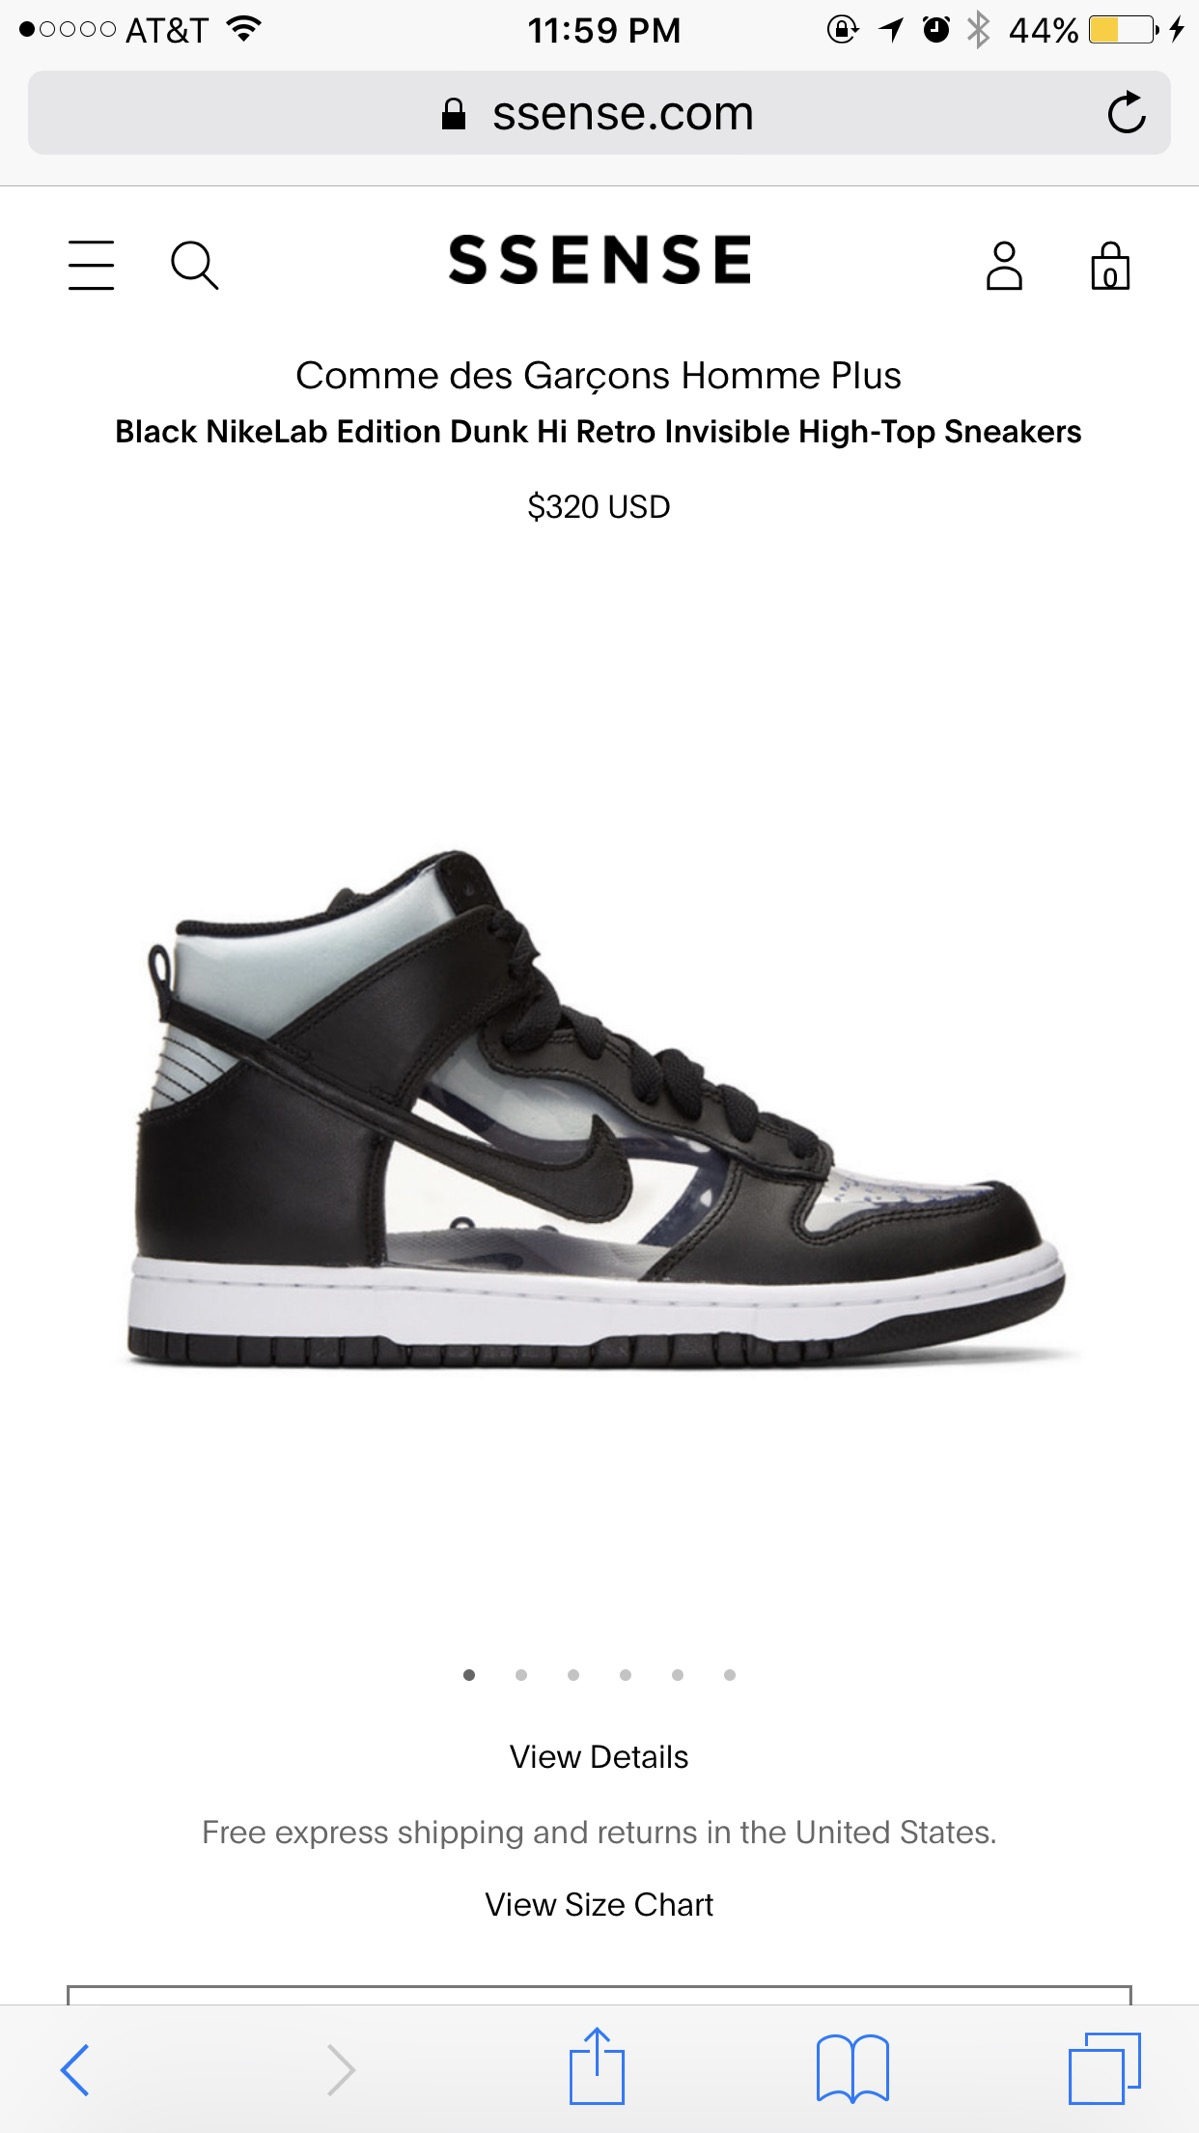 b622192b353e Nike Clear Dunks Size 7 - Hi-Top Sneakers for Sale - Grailed